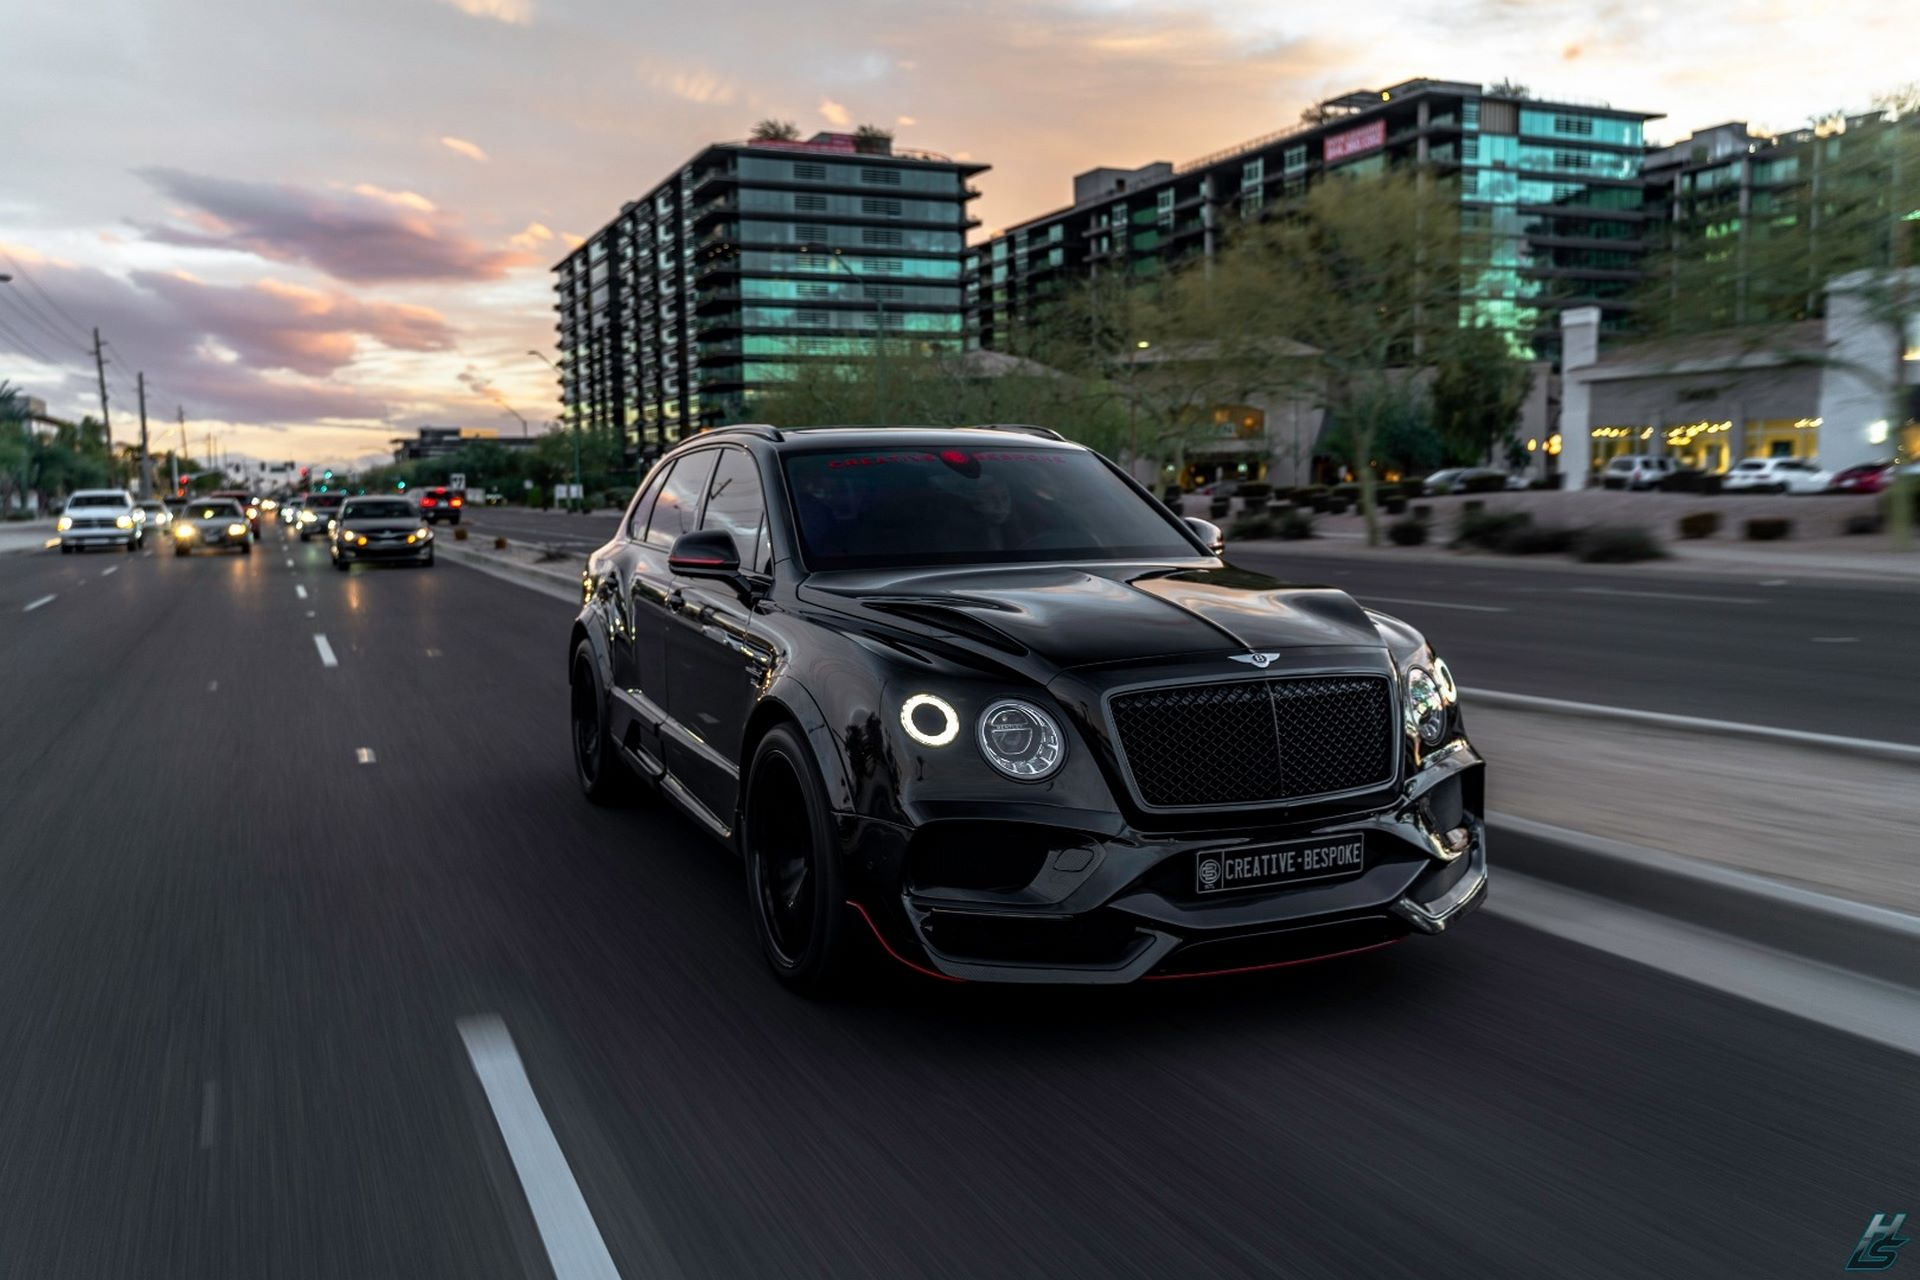 Bentley-Bentayga-by-Creative-Bespoke-41